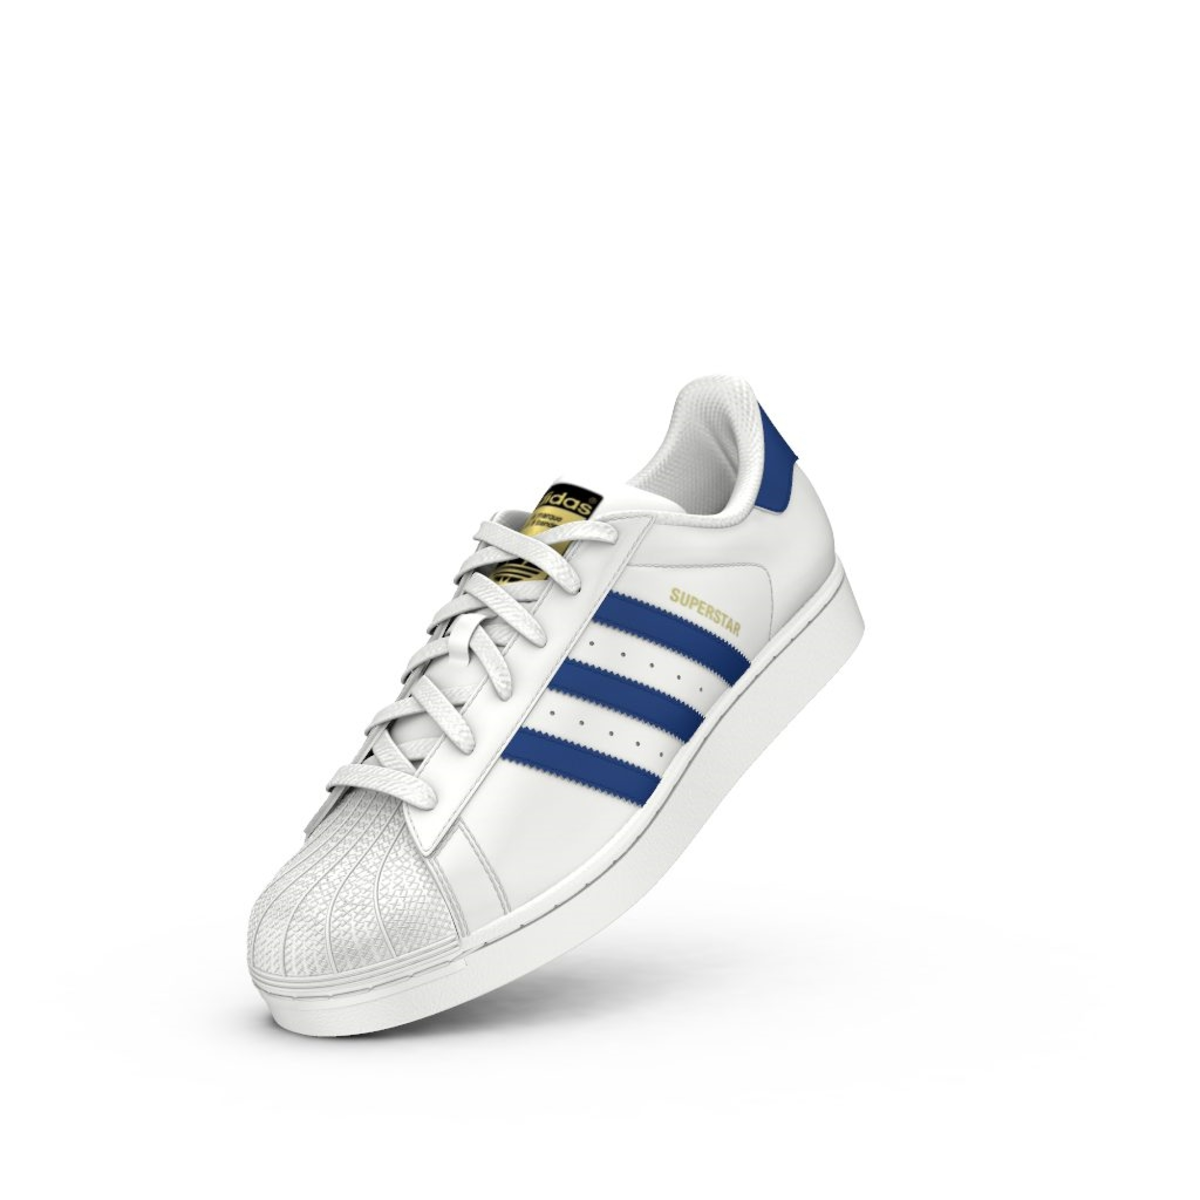 Adidas Sneaker Weiß Superstar Originals S74944 Damen Schuhe